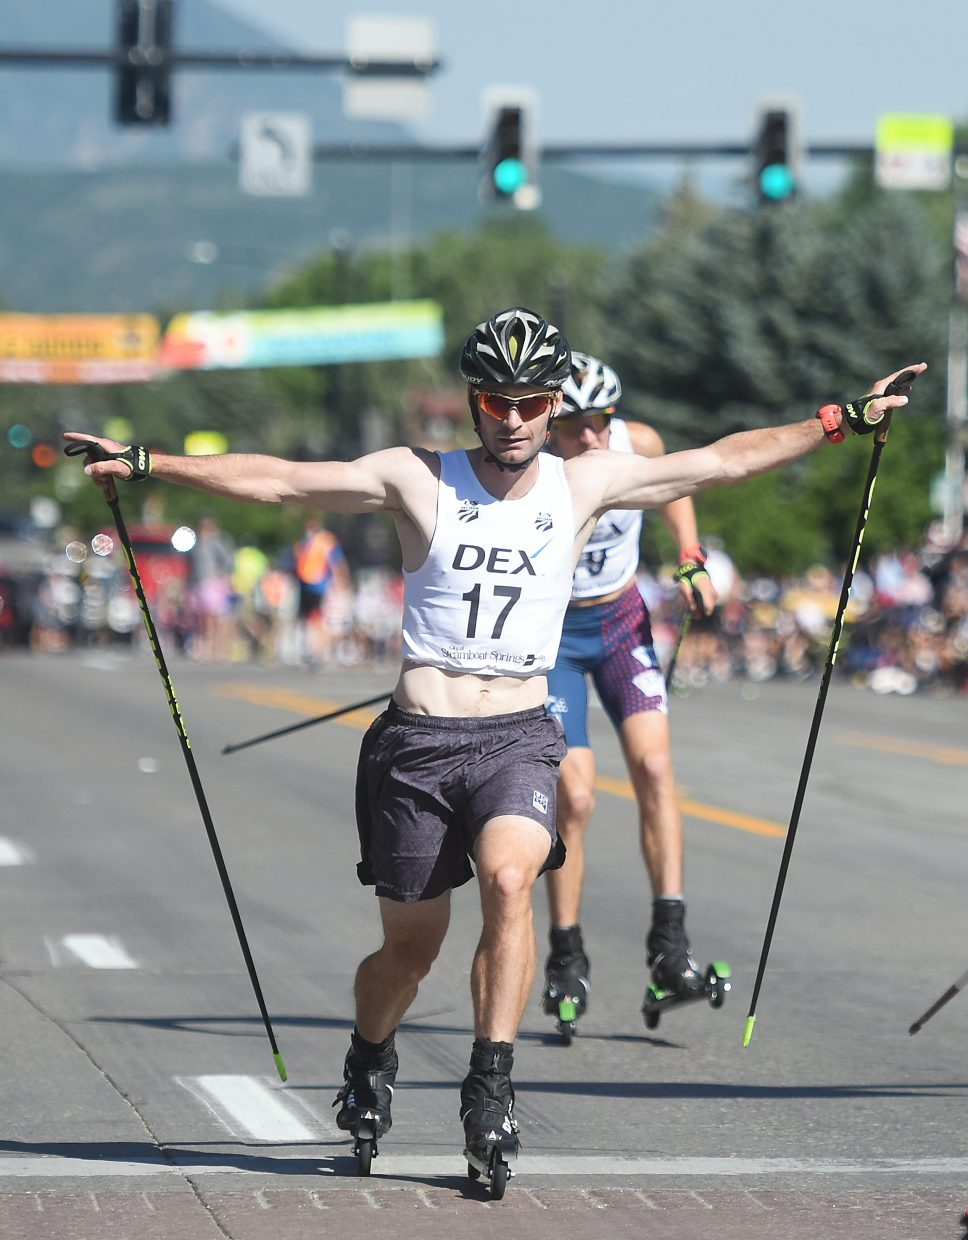 Bryan Fletcher throws his arms wide as he crosses the finish line in first place during the annual Fourth of July Nordic combined event in Steamboat Springs. On Sunday in Lake Placid, New York, Fletcher won his third Nordic combined national championship.